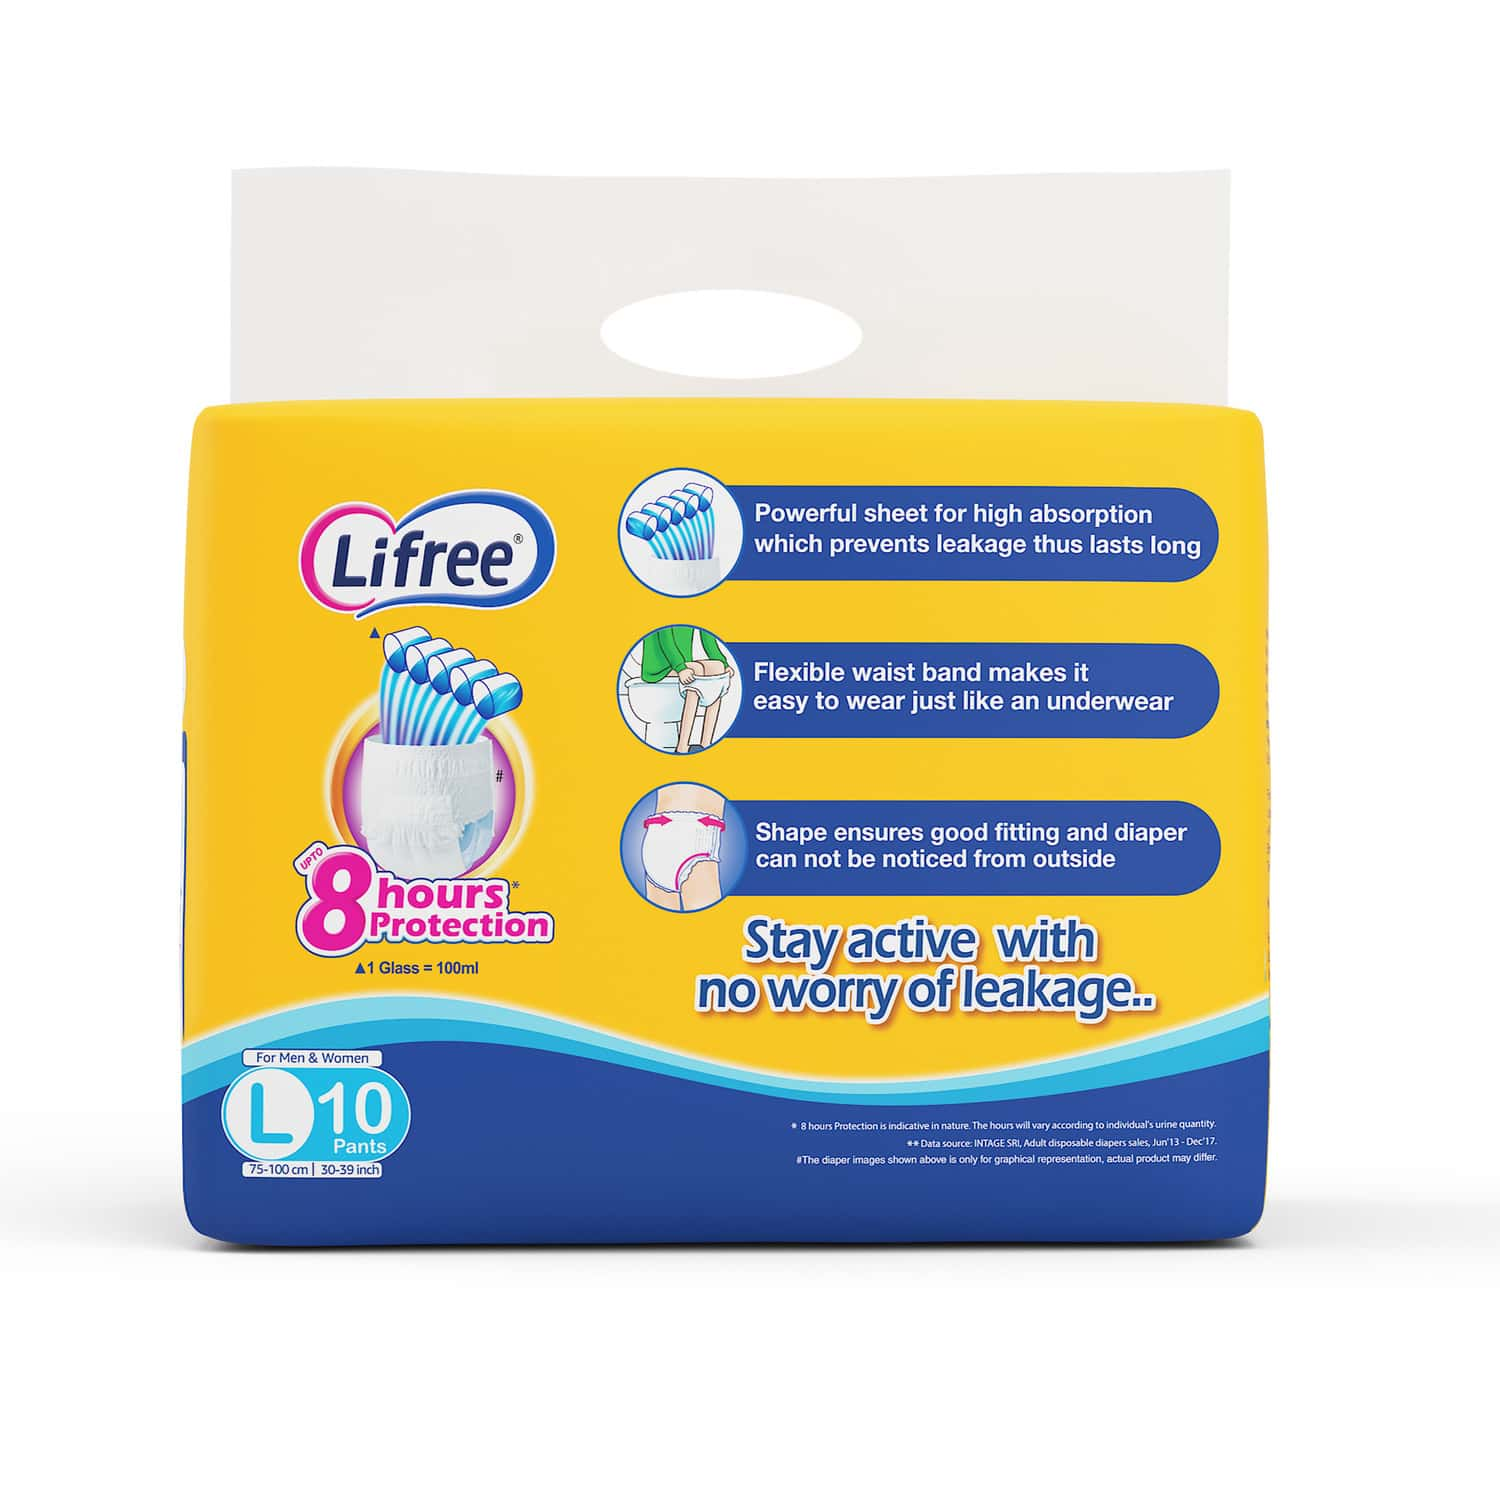 Lifree Large Size Diaper Pants, Pack Of 10 Diapers (l-10)